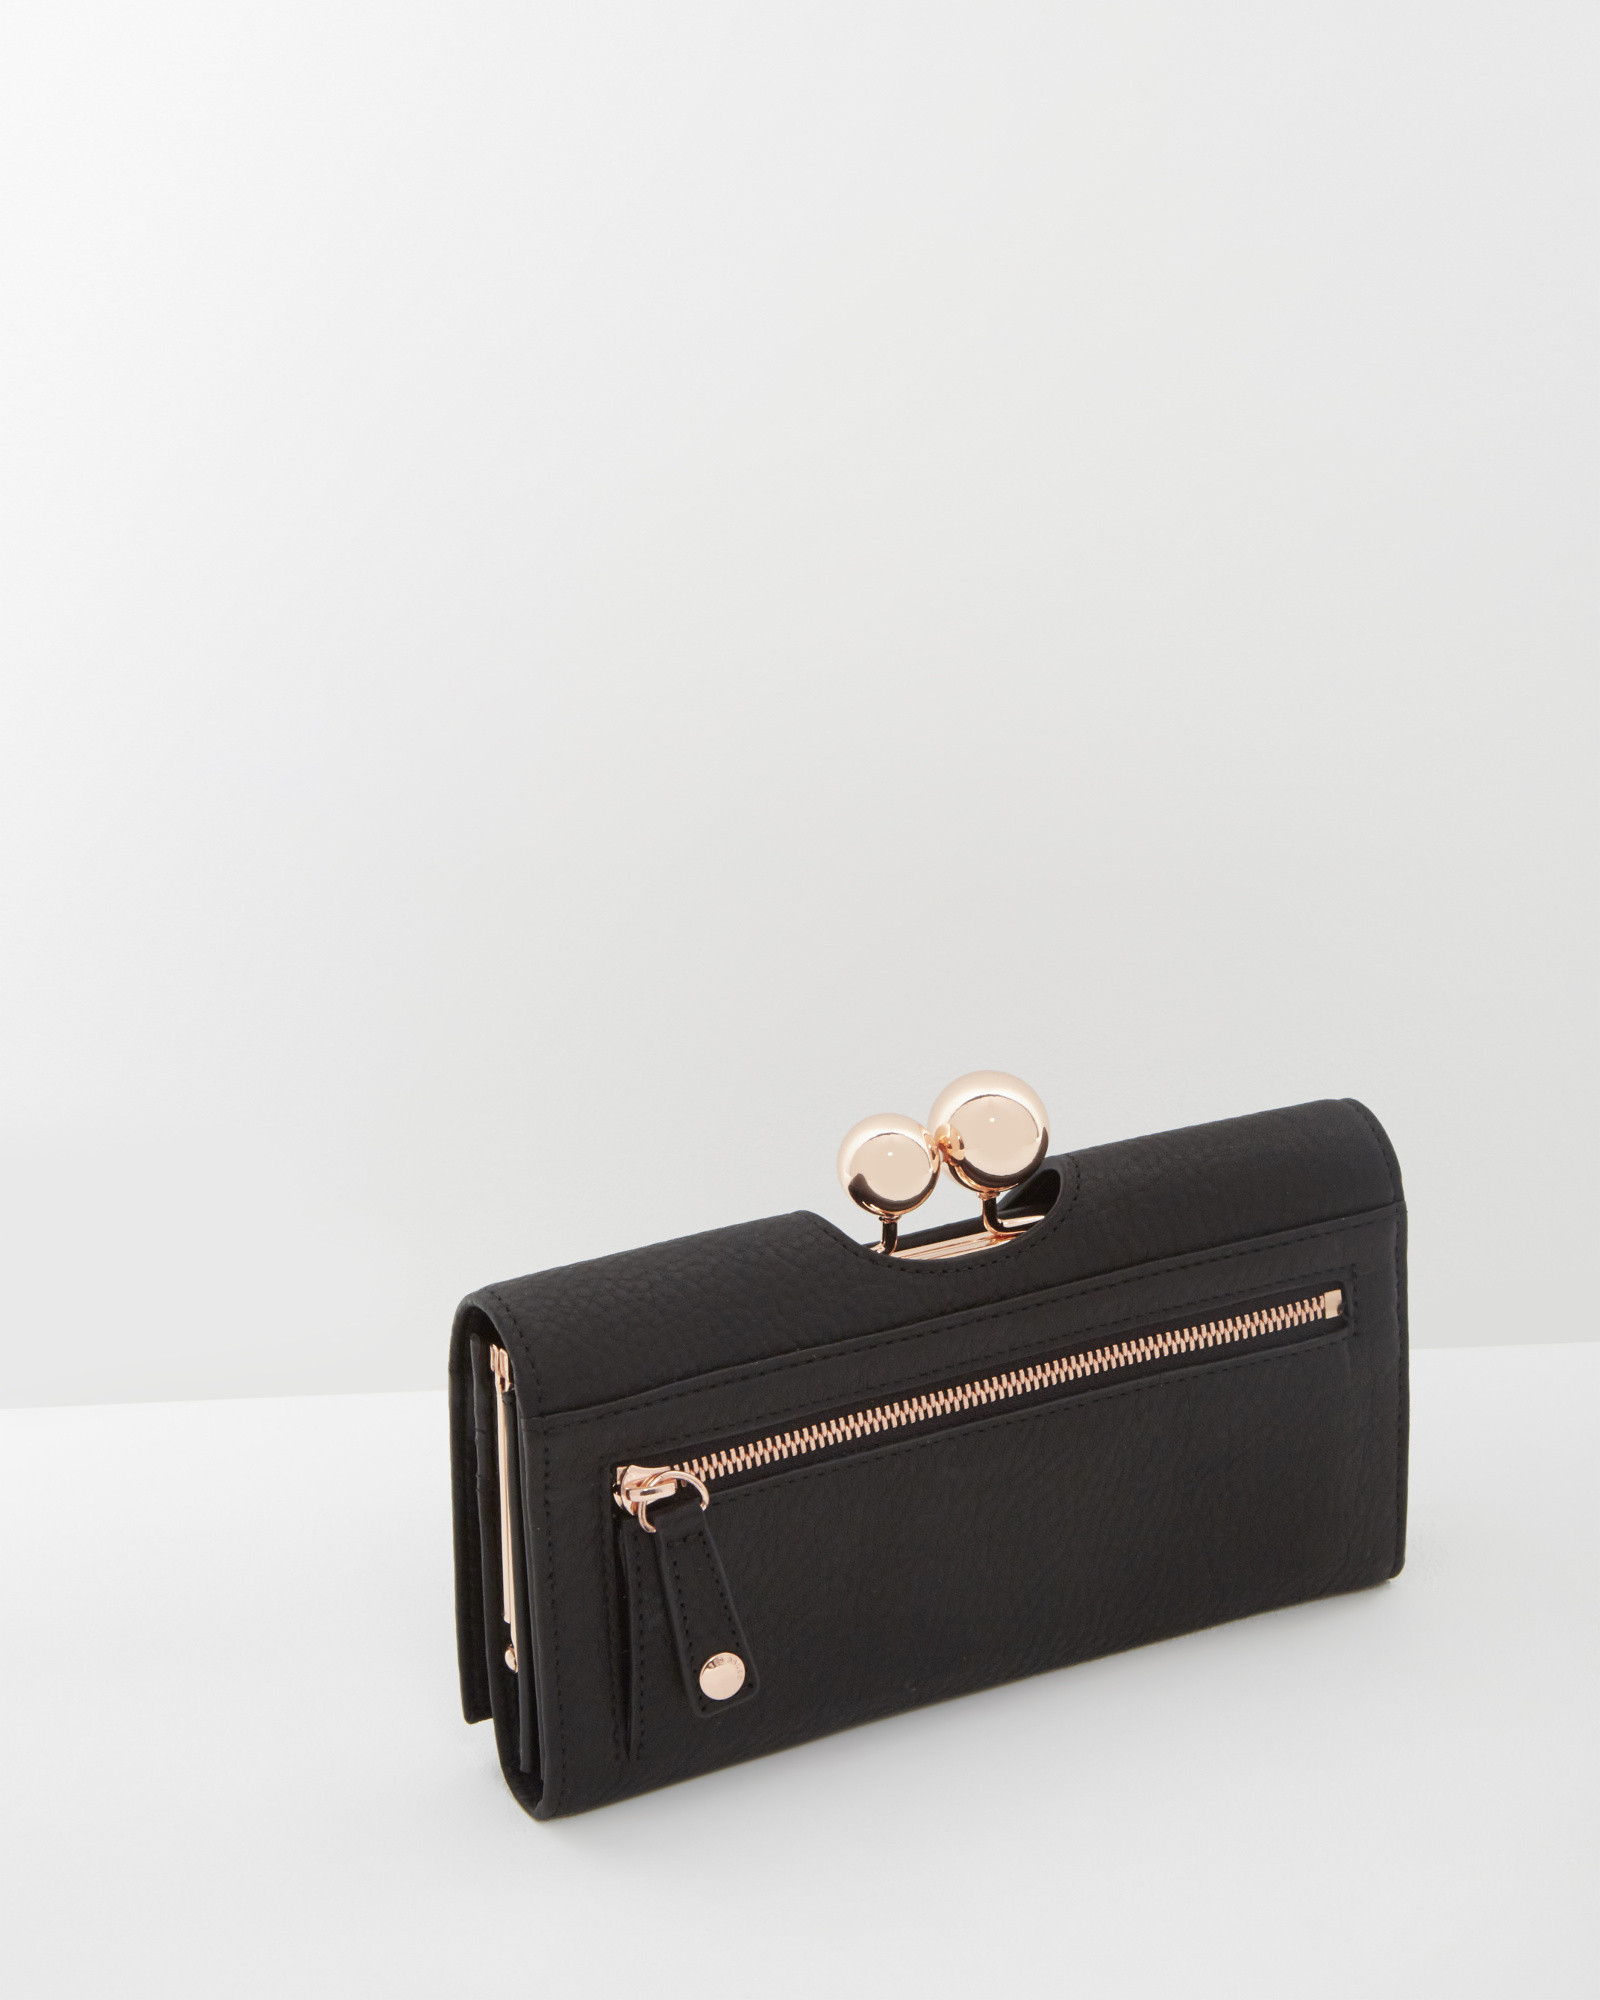 5e97db8688ce Ted Baker Black Leather Purse Best Image Ccdbb